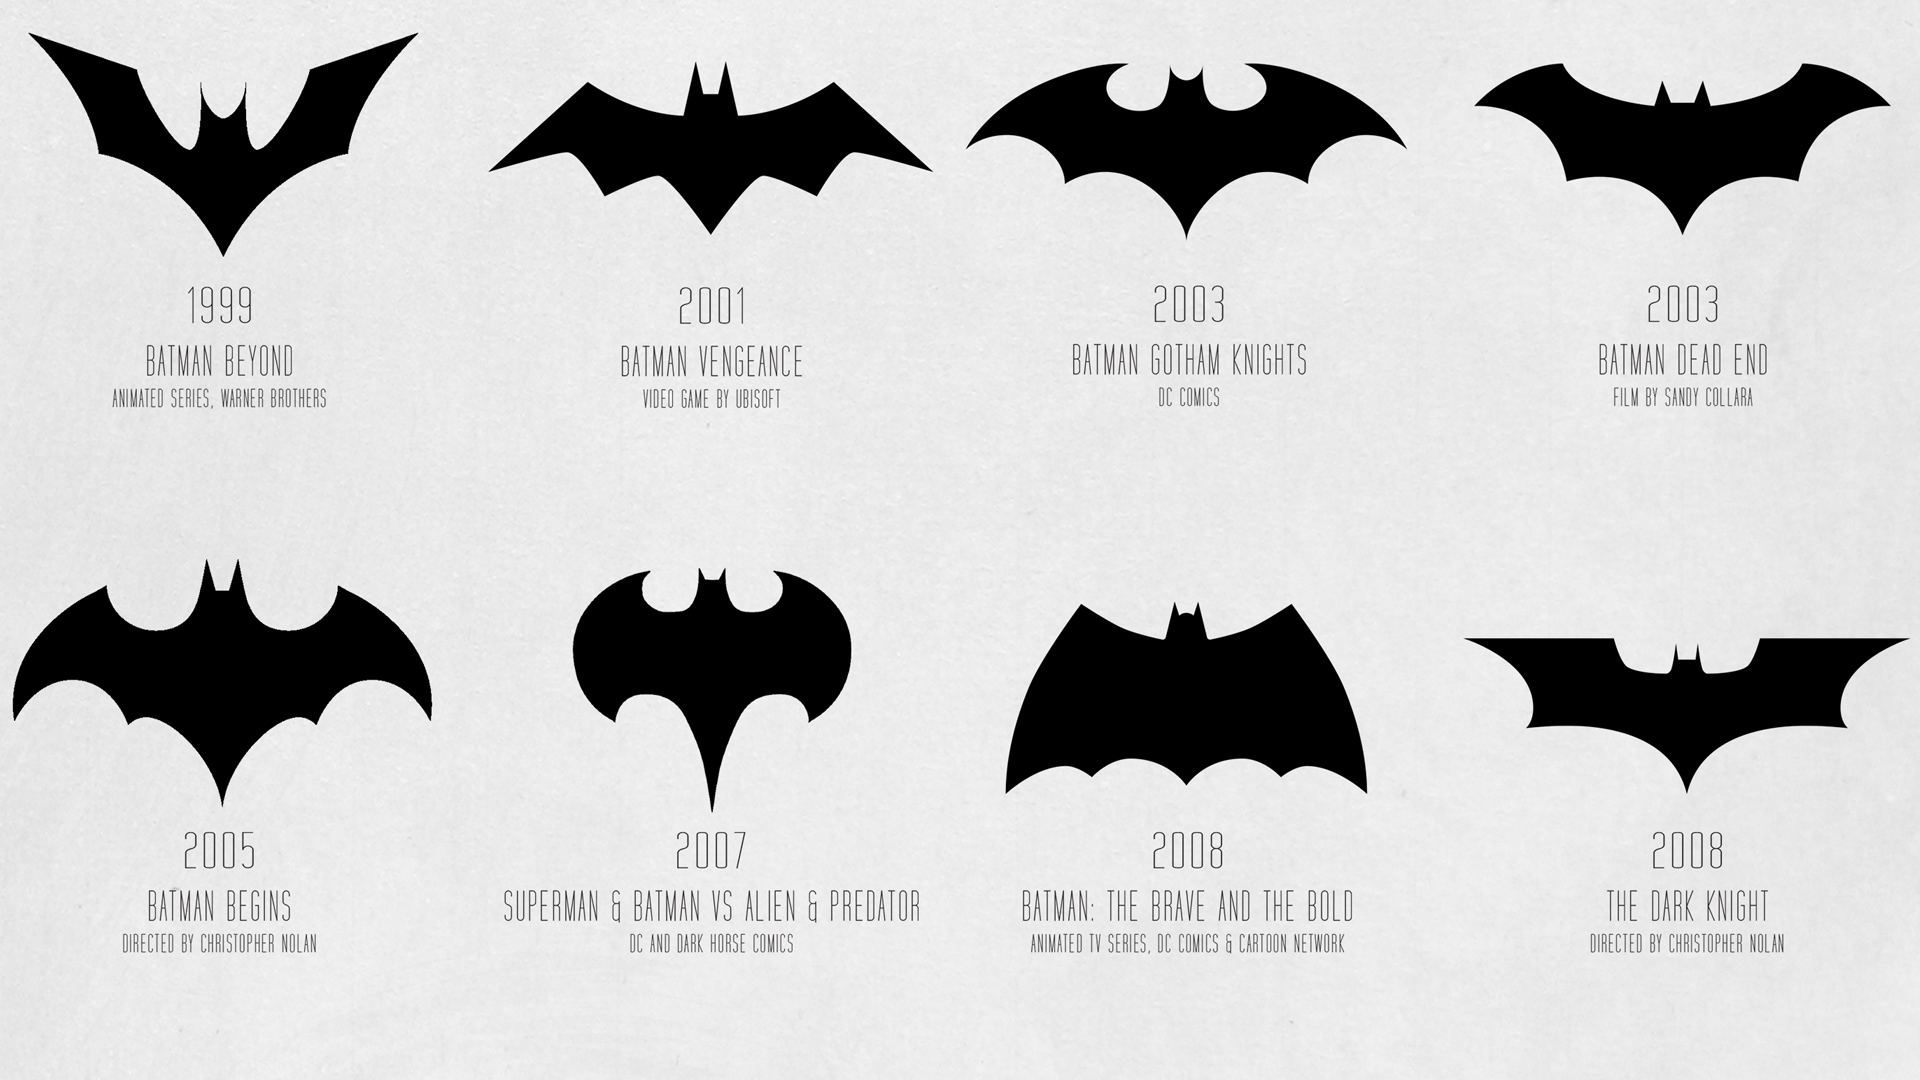 Superhero Logo Designs Their Logo Design Elements